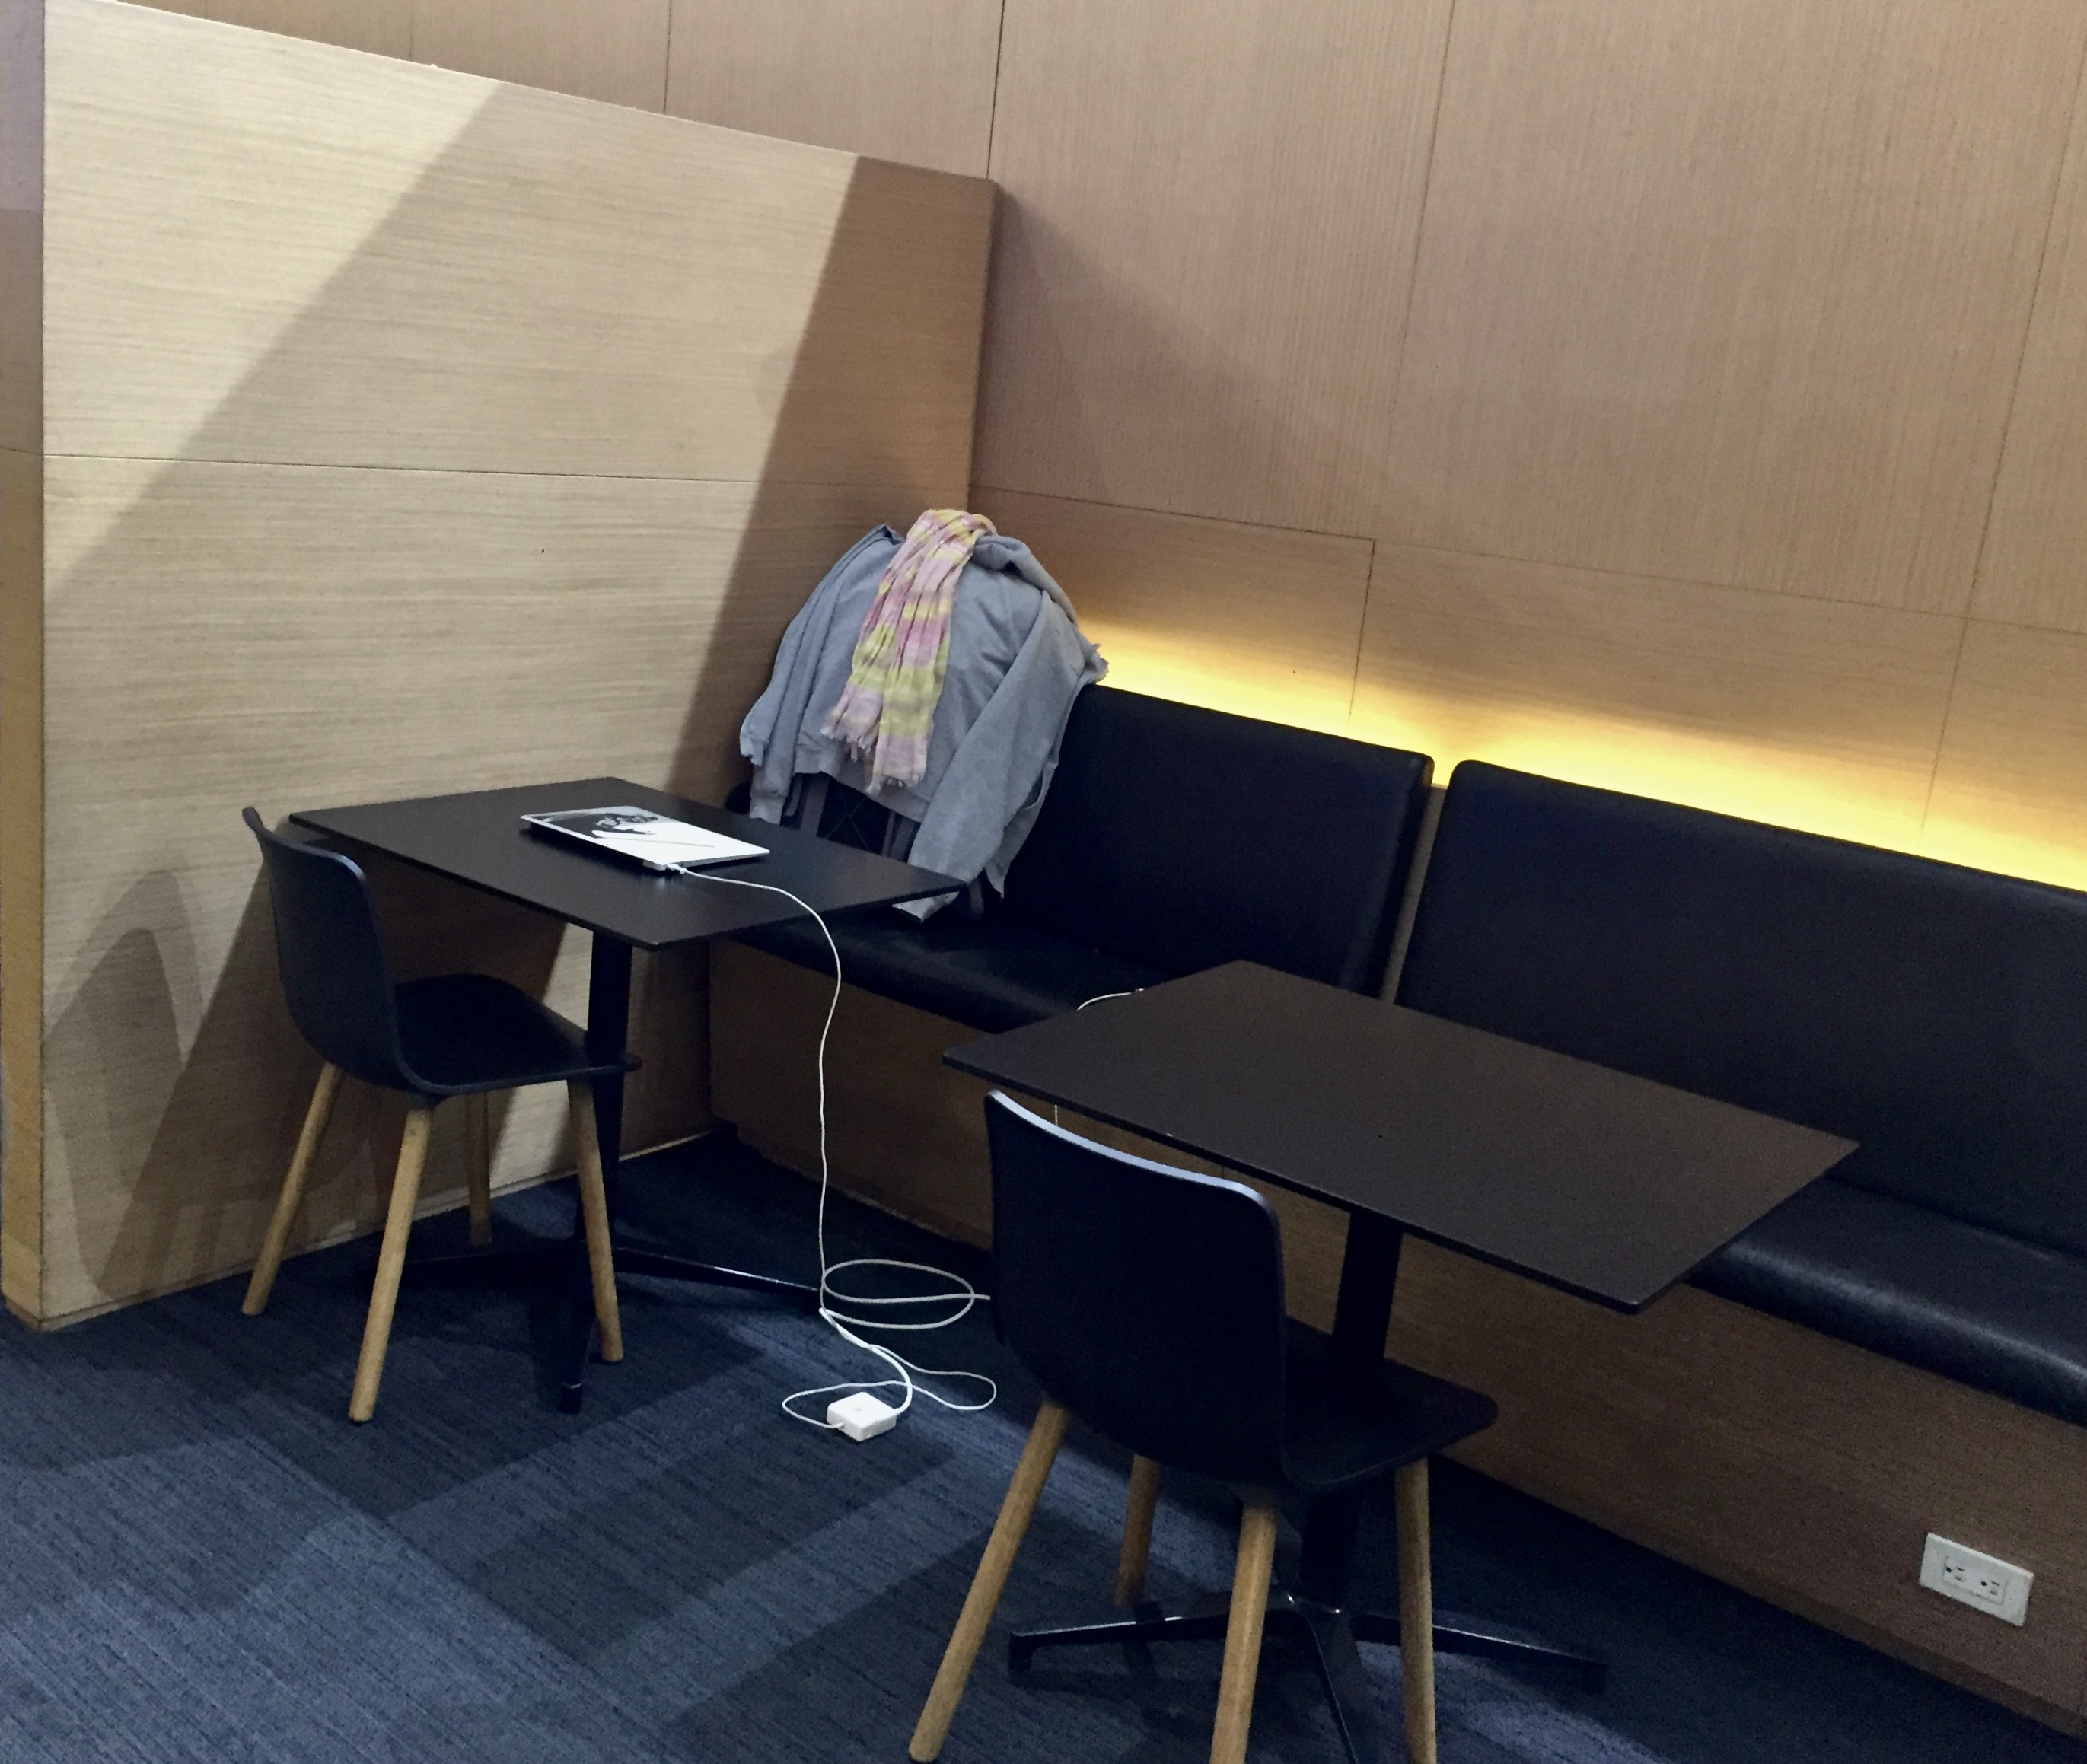 2020 - January 4th - Air Mexico - Upgraded to Business Class - Aeropuerto Internacional Benito Juárez - Mexico City - Salon Premier Business Class Lounge - Found my spot for the next 9 HOURS!!!!!!!